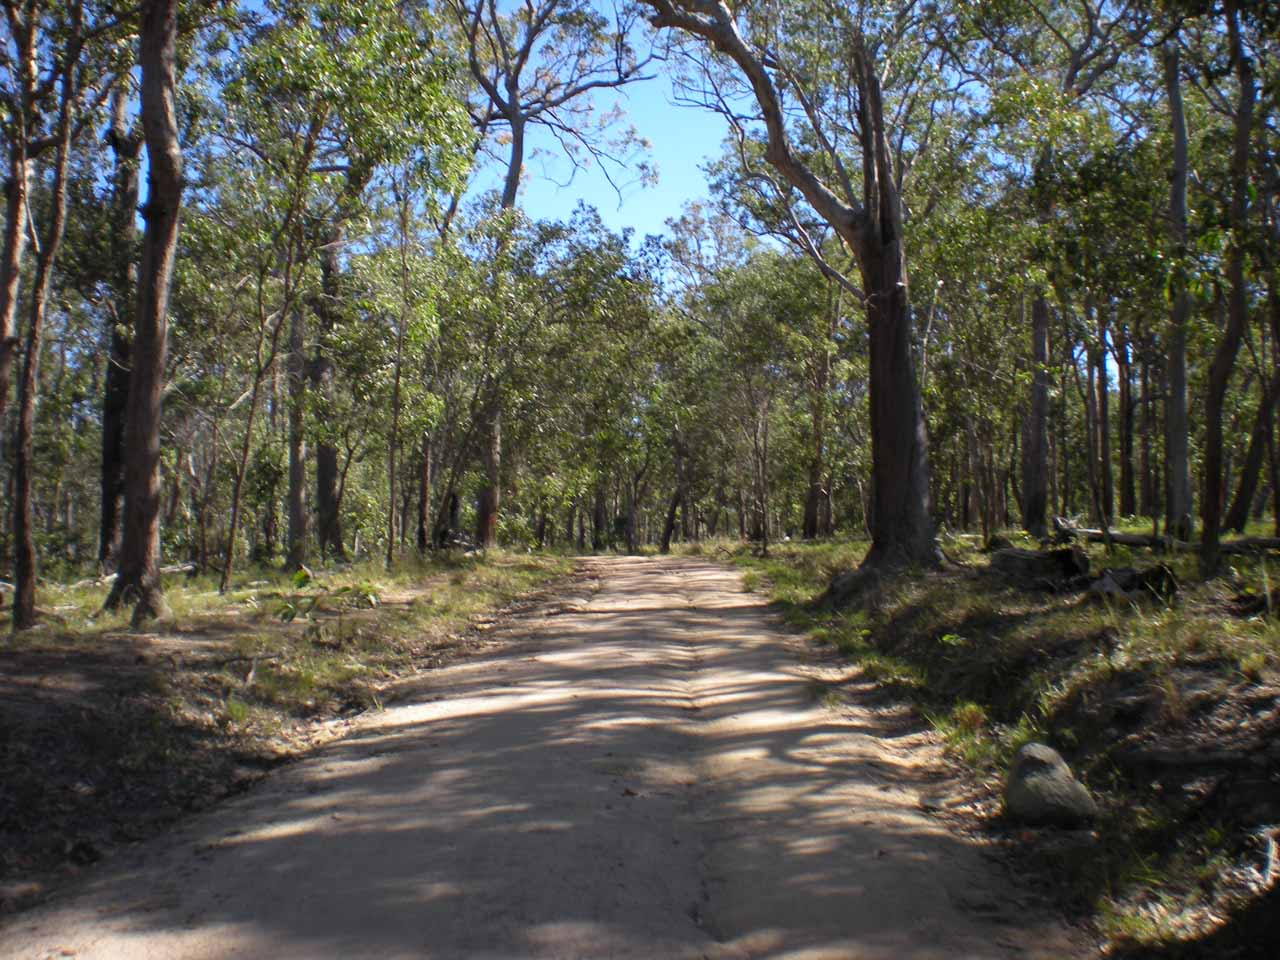 The final 5.2km stretch of road to Blencoe Falls narrowed considerably, but didn't seem too terrible at first